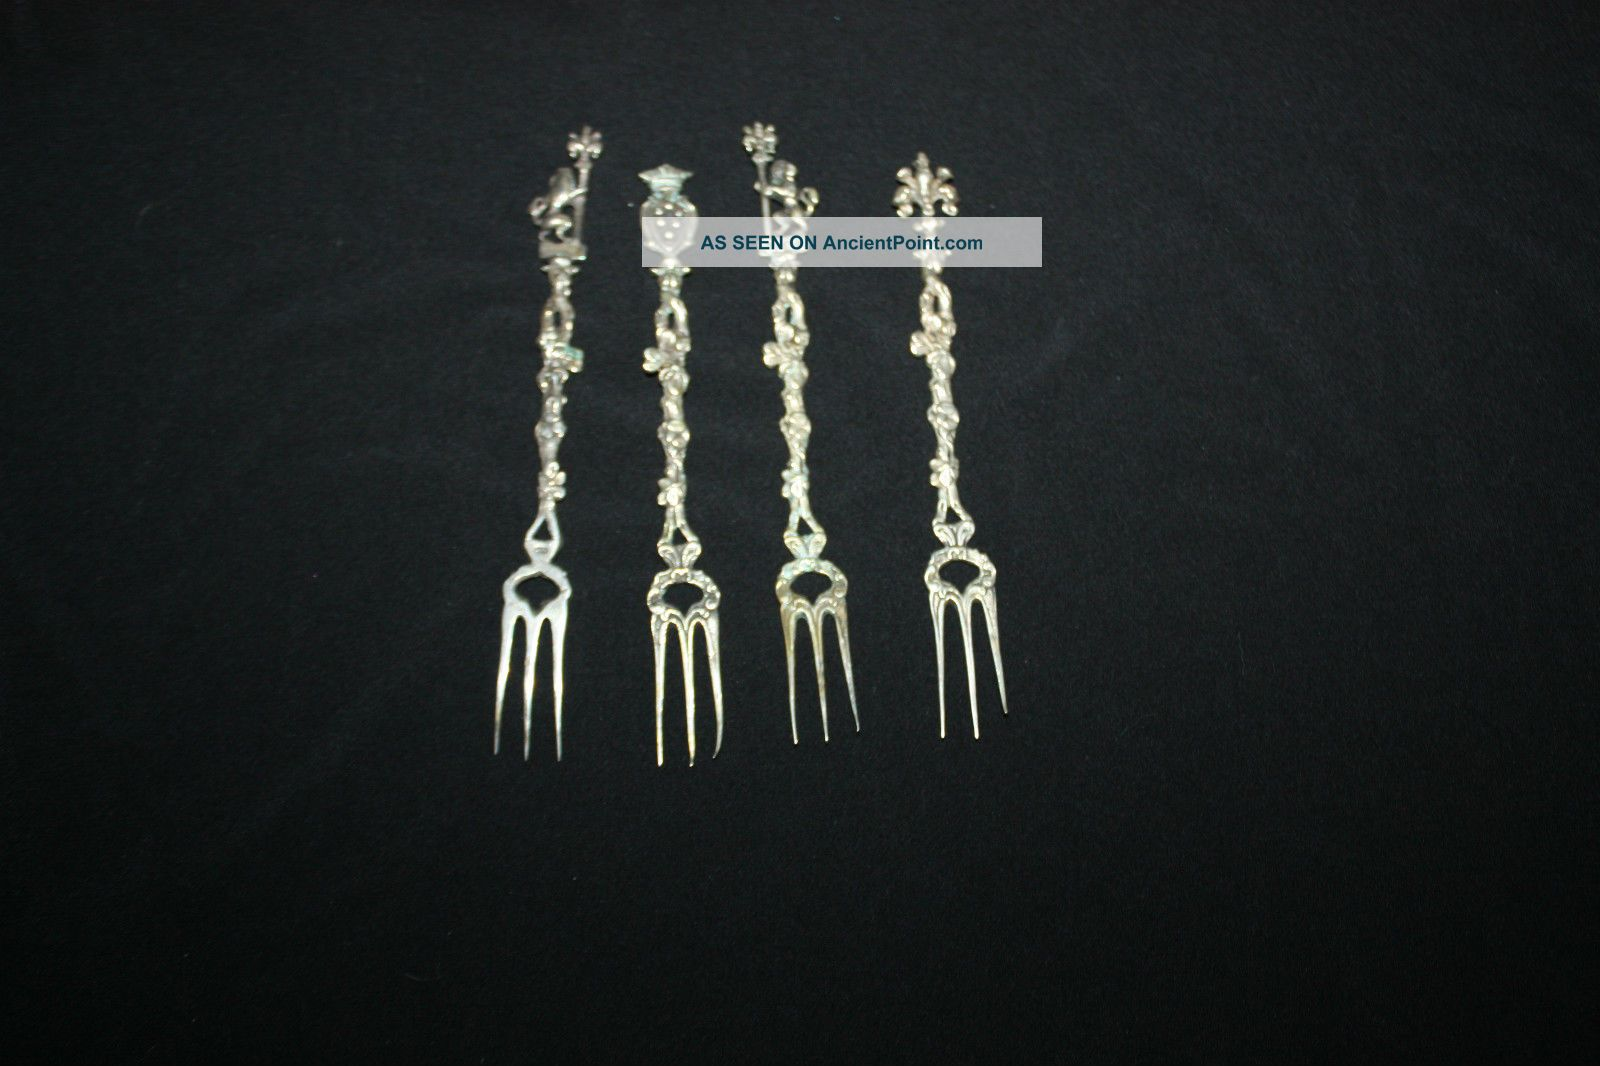 4 Vintage Firenze Highly Decorated Cocktail Spoons 800 Silver Silver Alloys (.800-.899) photo